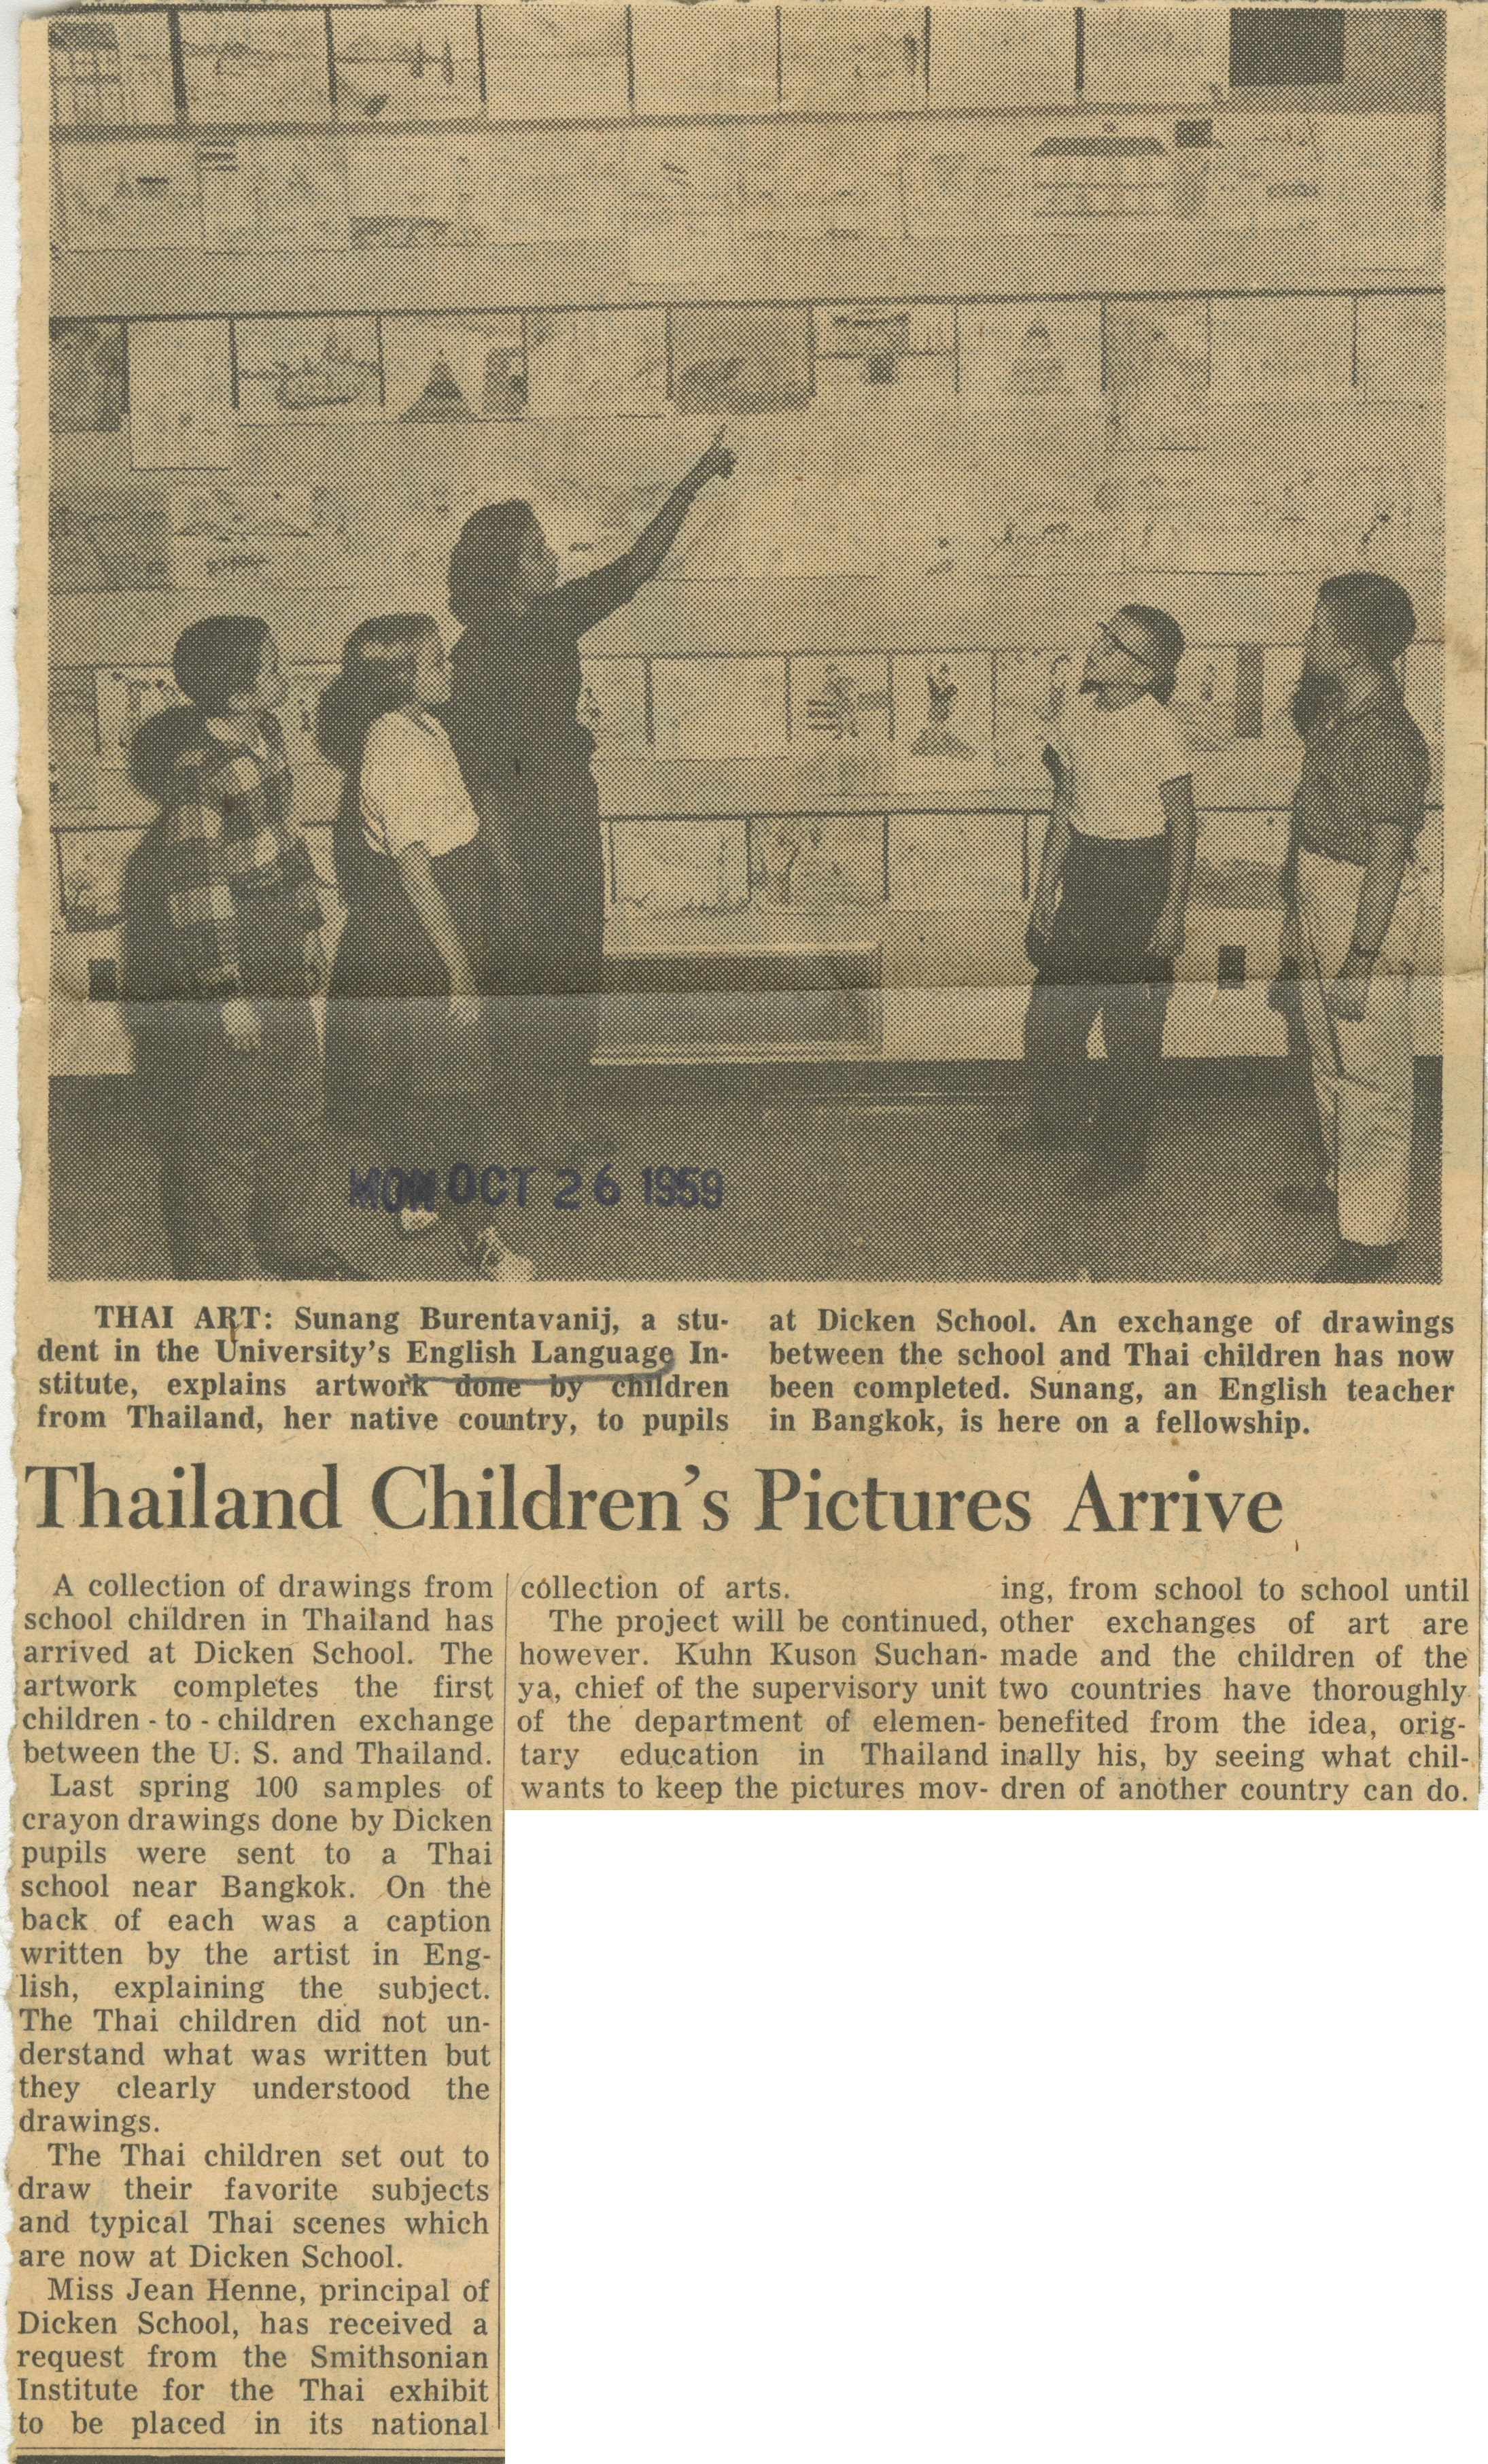 Thailand Children's Pictures Arrive image